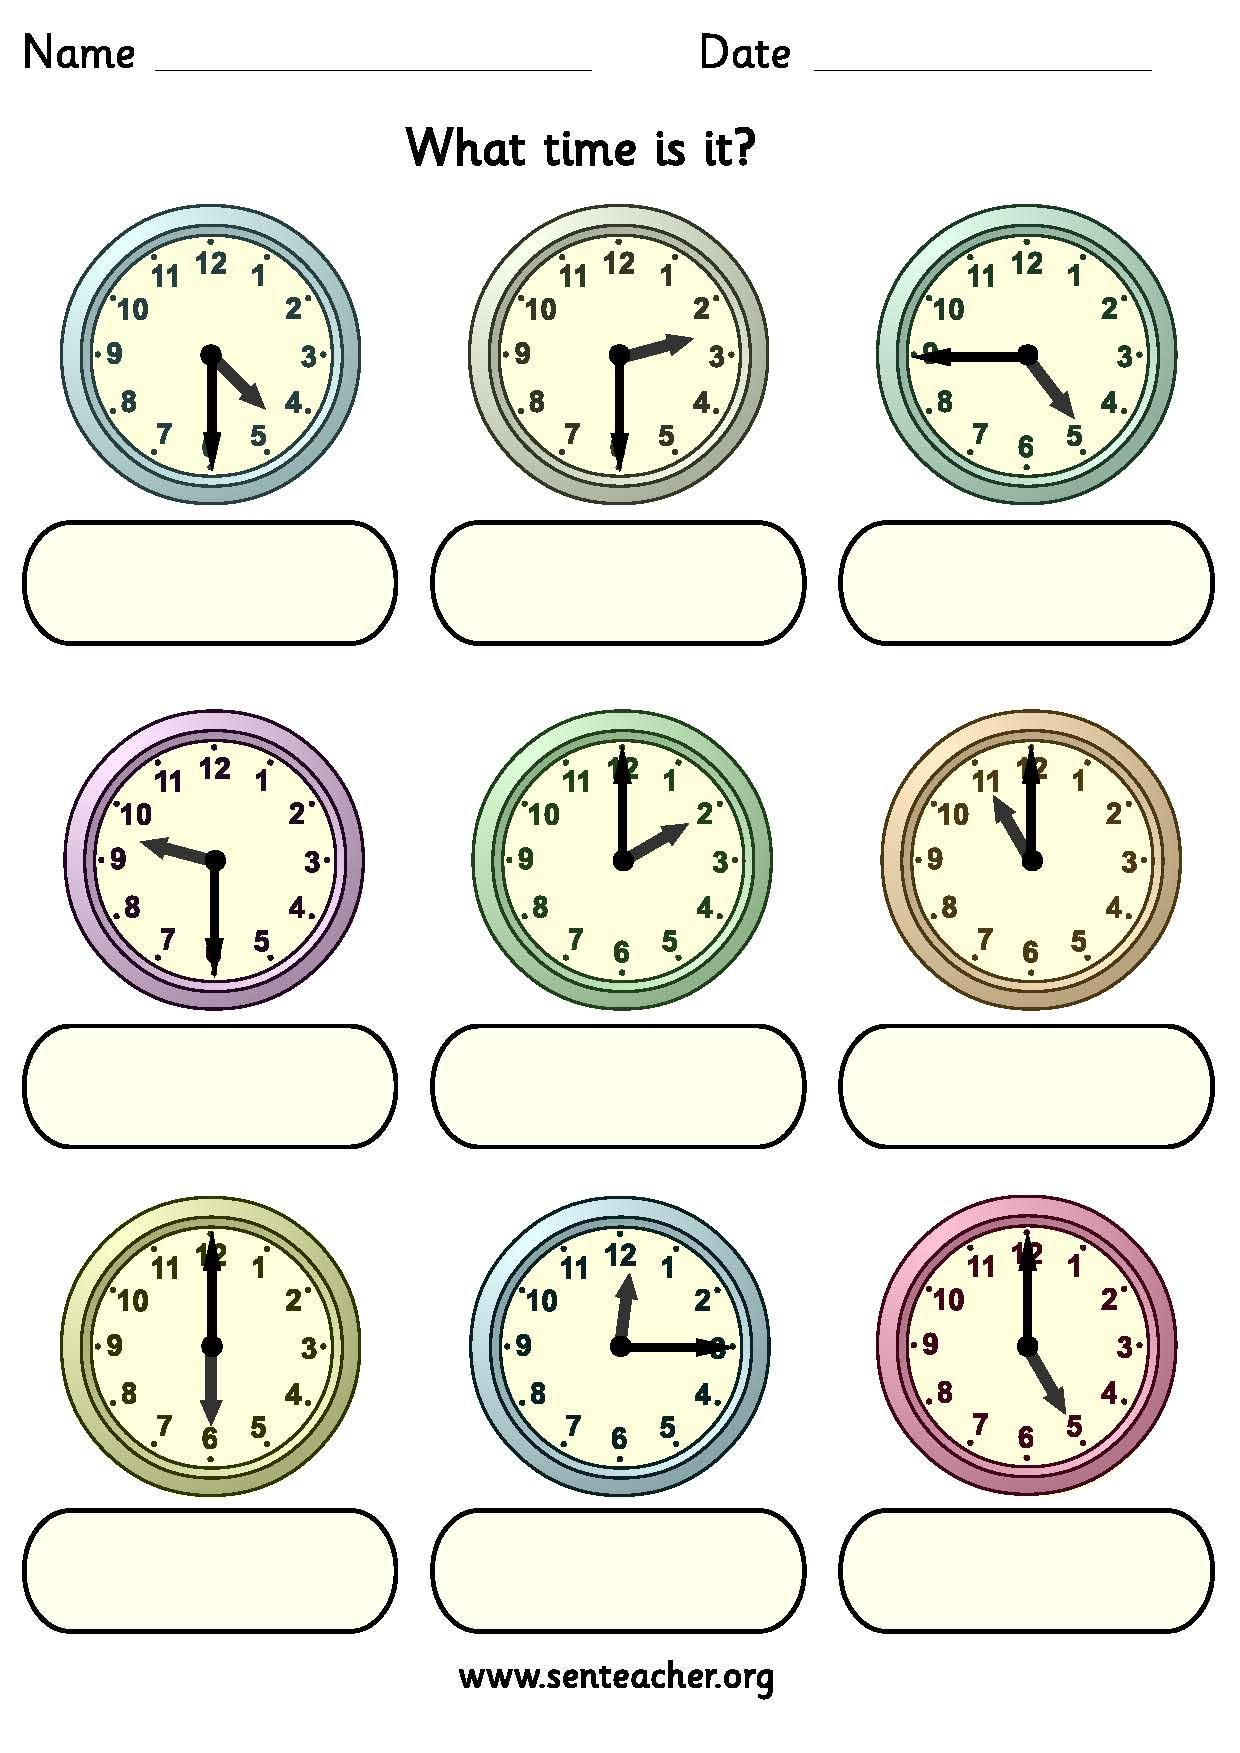 Worksheet Containing 9ogue Clocks Showing O Clock